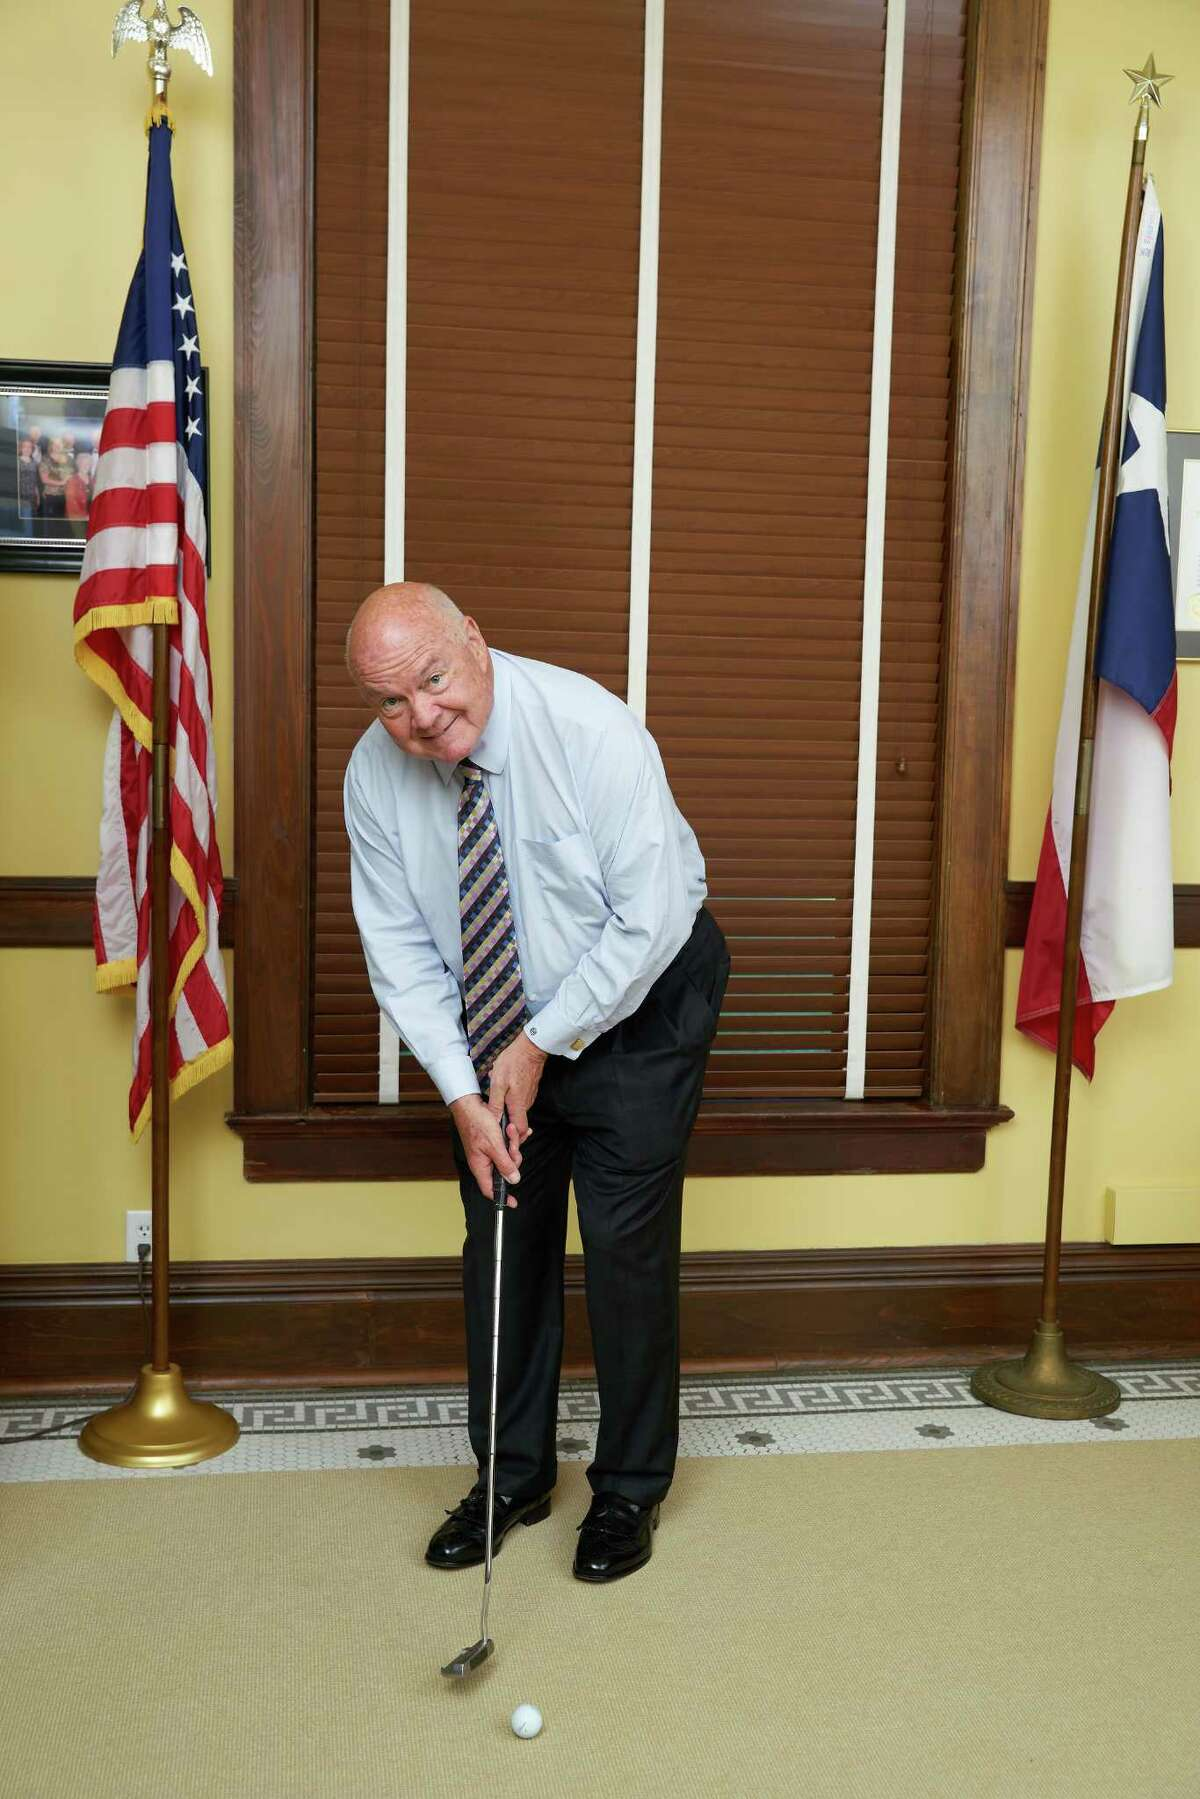 Fort Bend CountyJudge Robert Hebert challenges all 18 city mayors, city leaders, local representatives and the Fort Bend community to hit the fairways to raise funds for local families, including those affected by Hurricane Harvey. Golf �